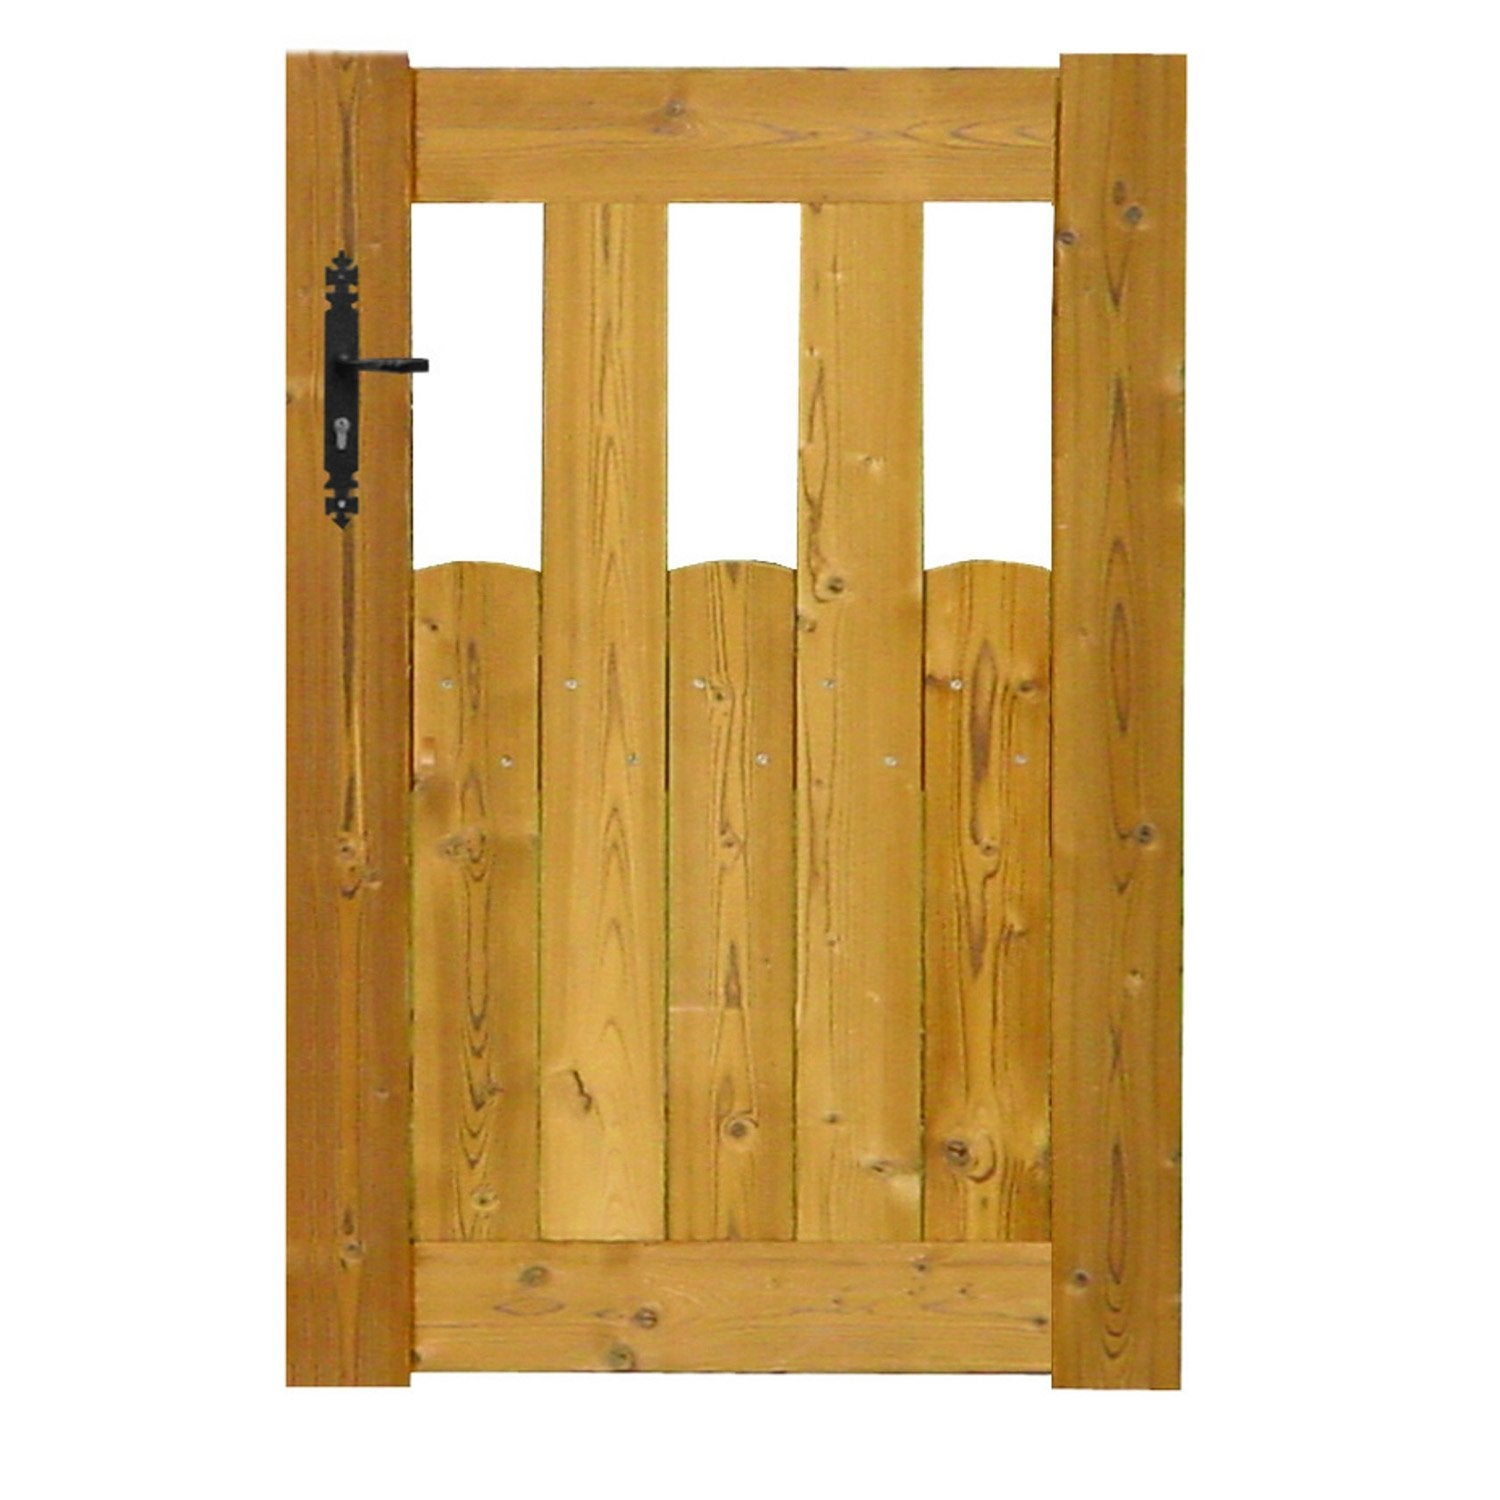 Portillon battant en bois lacanau x cm for Portillon piscine bois